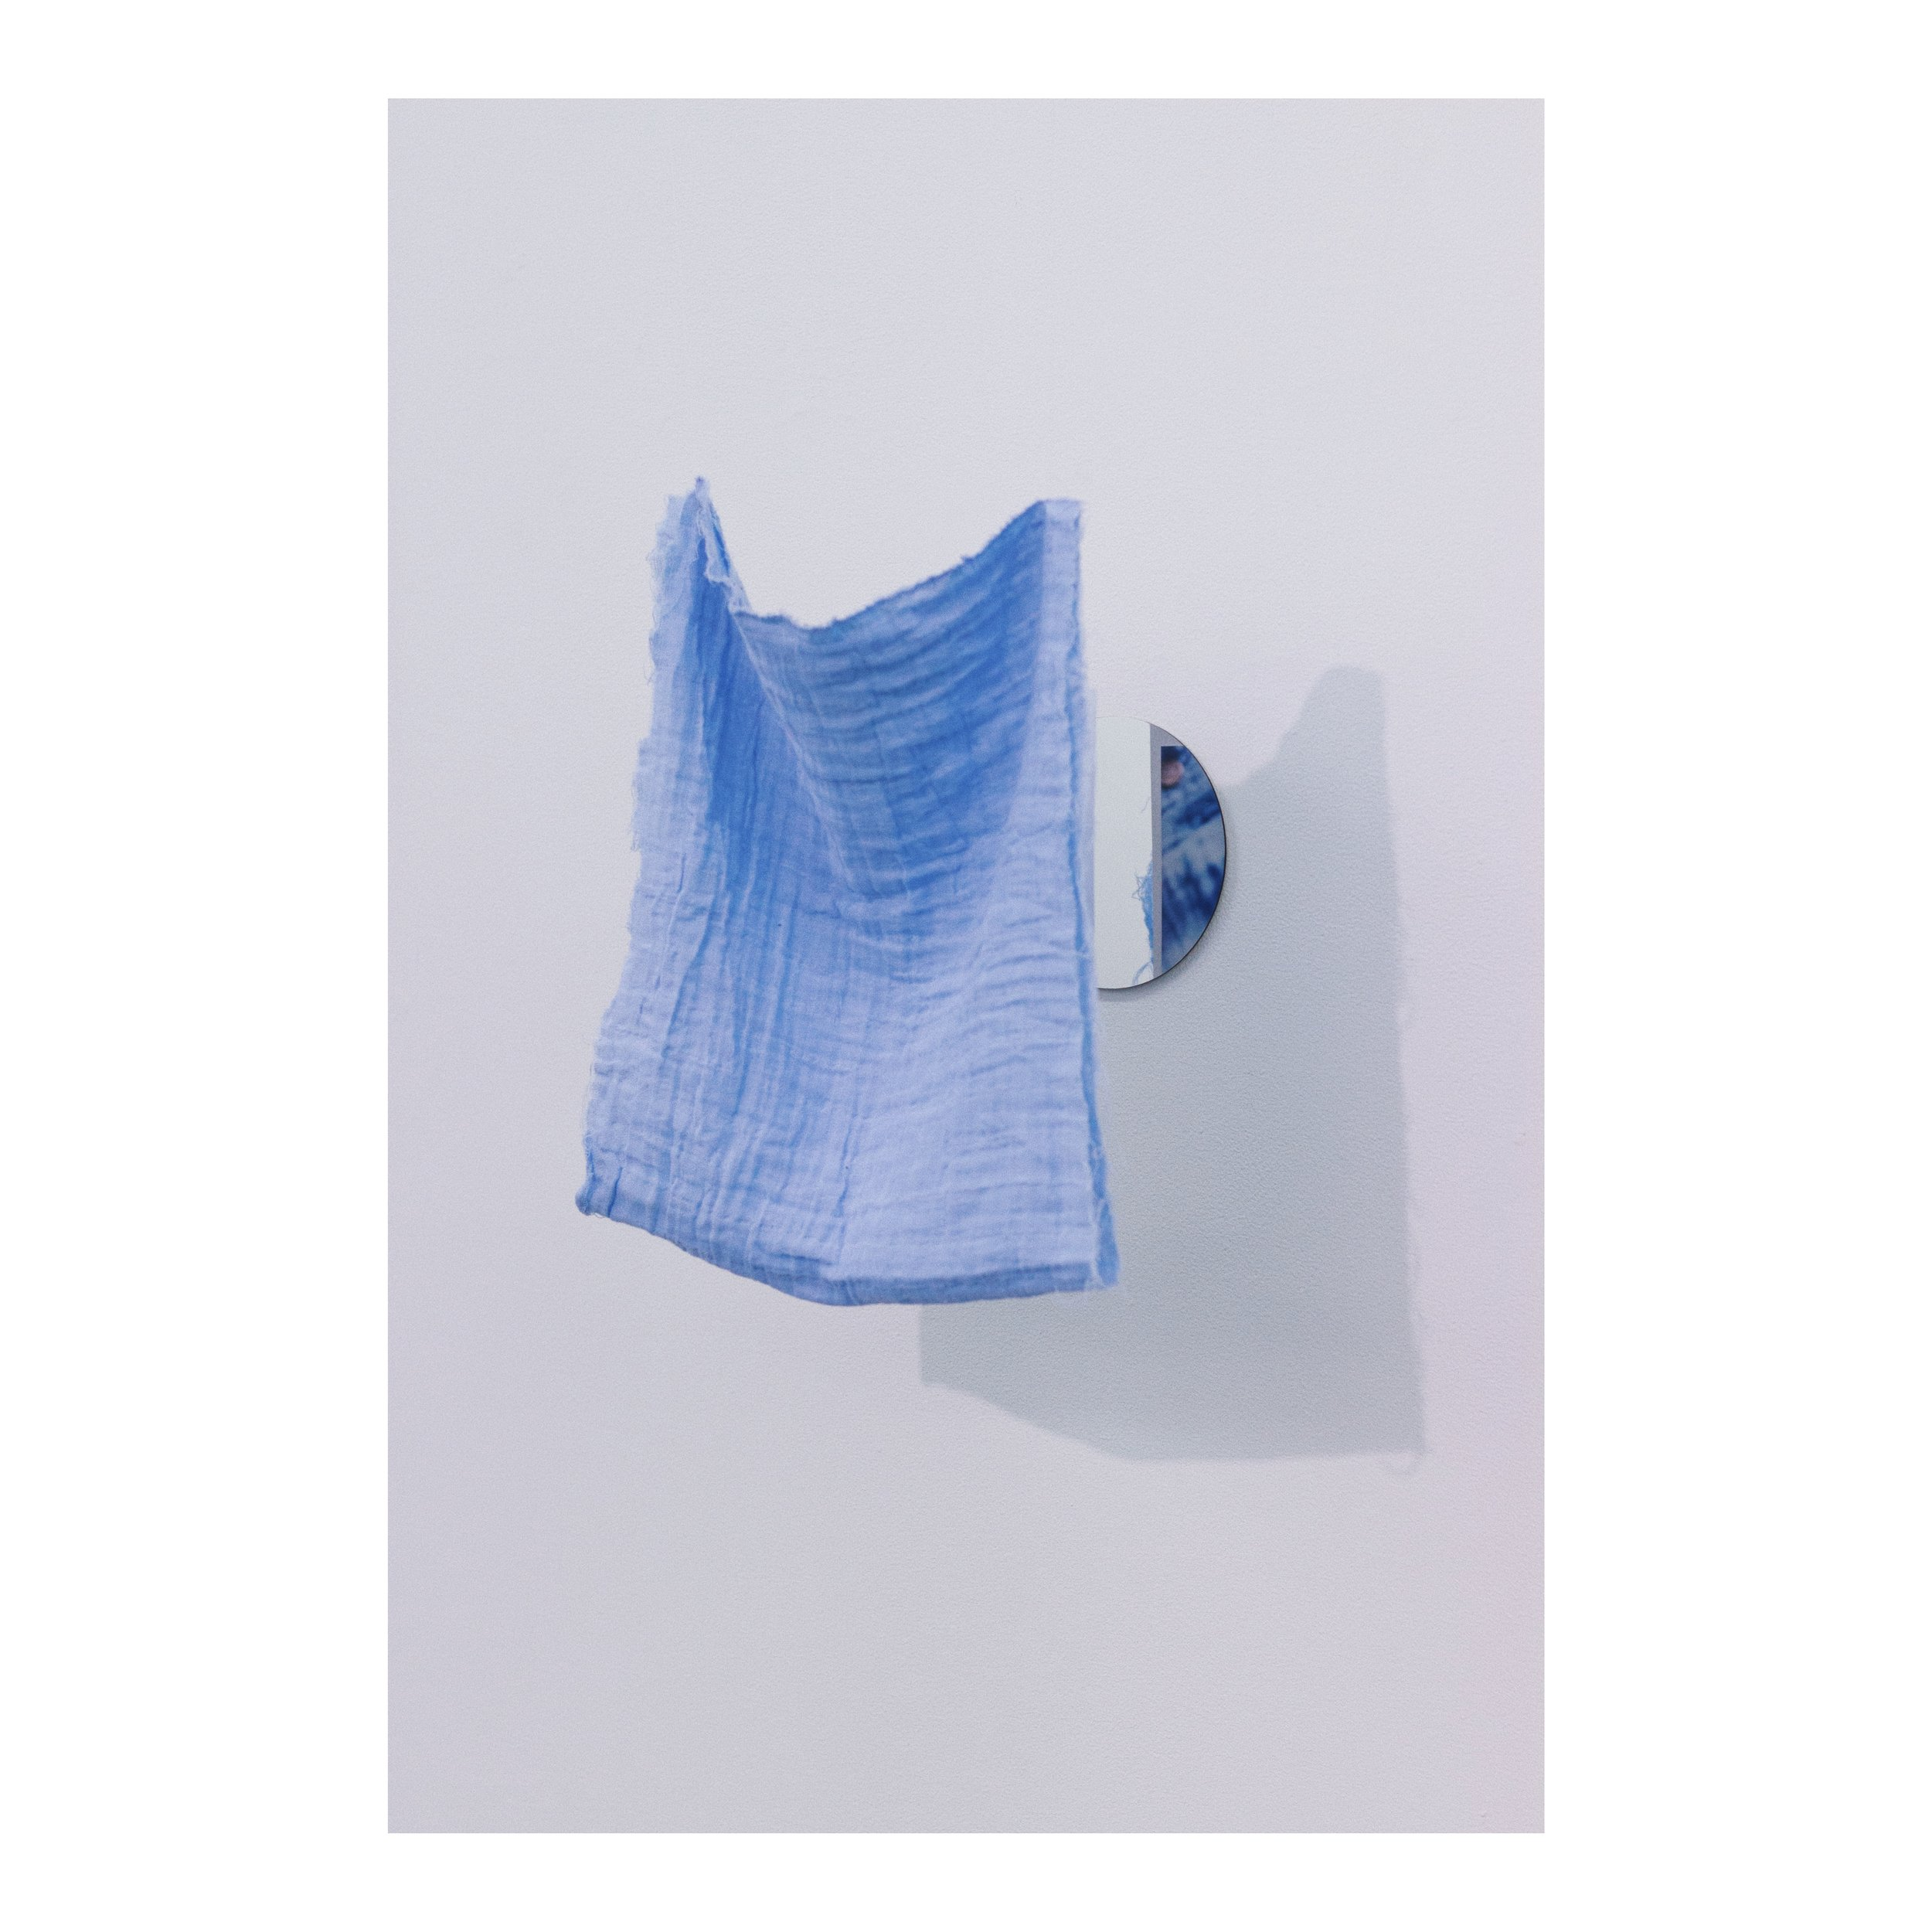 (untitled), ​ 2019     double gauze fabric, digital print, mirror